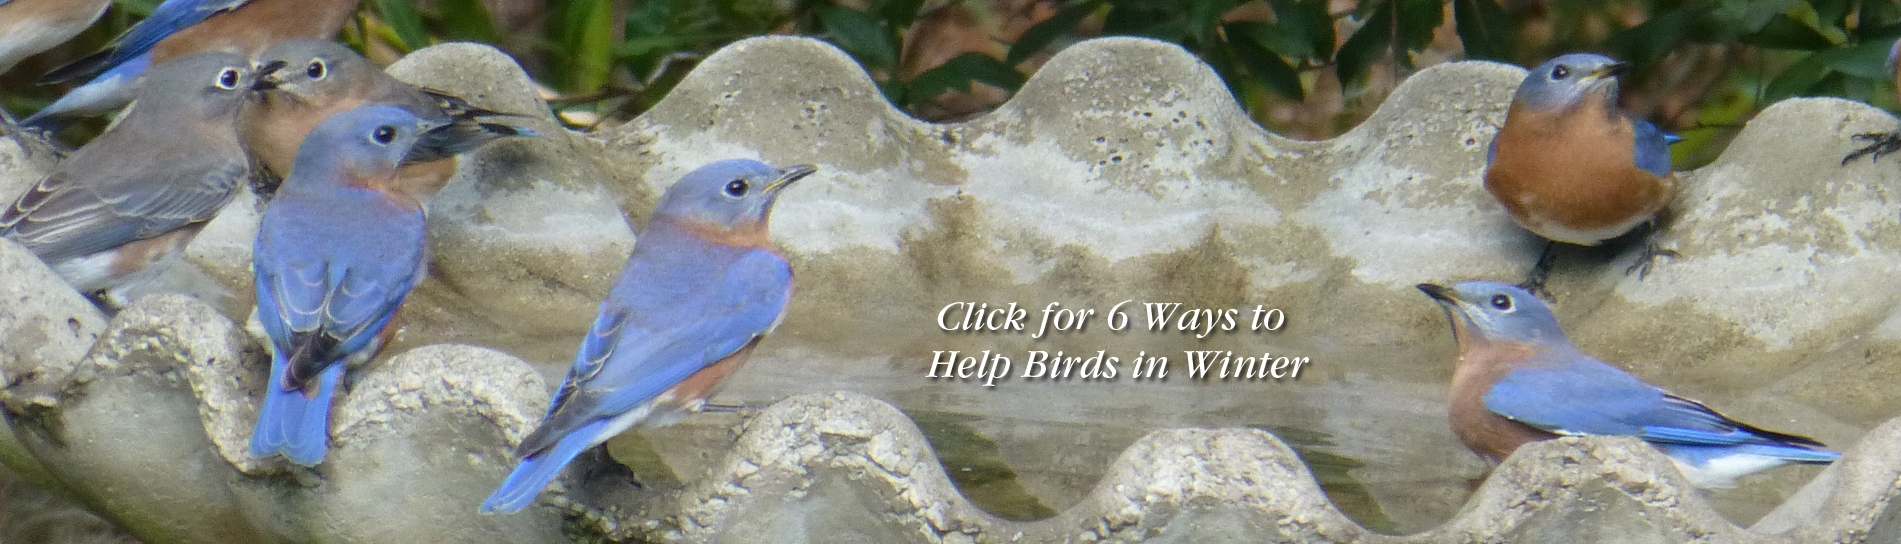 6 Ways to Help Birds in Winter